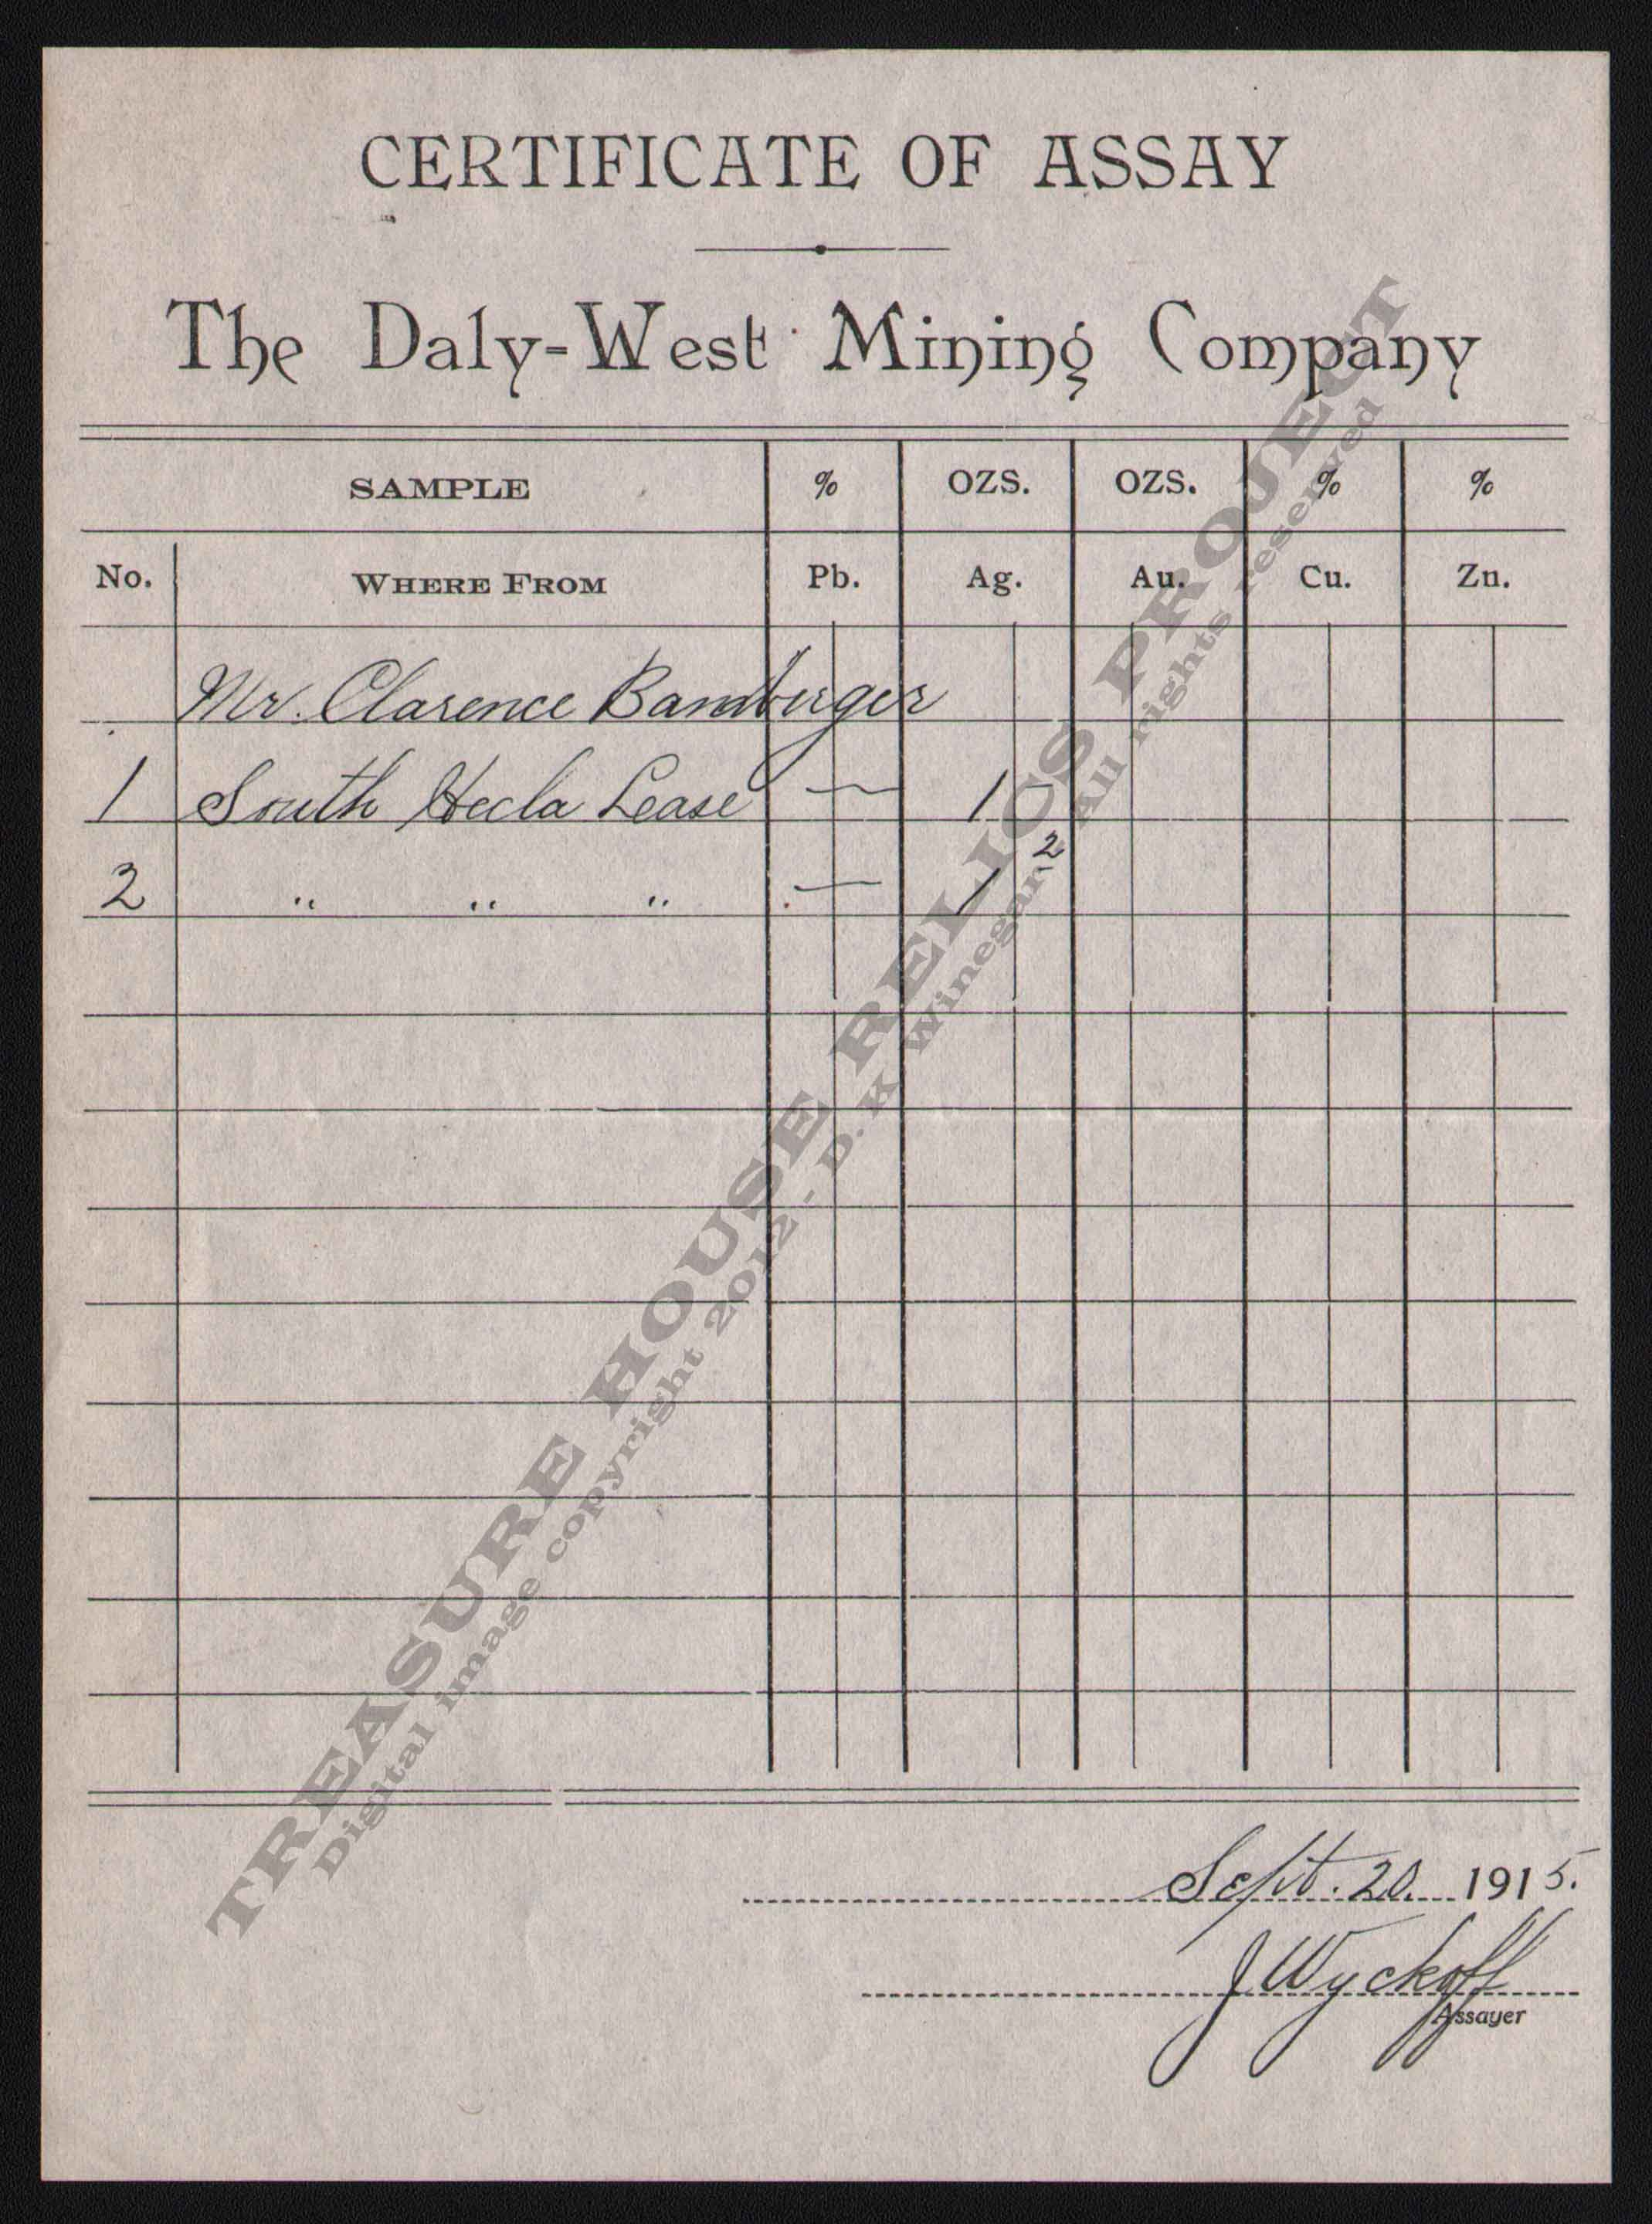 LETTERHEAD/ASSAY_DALY_WEST_MINING_COMPANY_9_20_1915_KIRK_400_crop_emboss.jpg